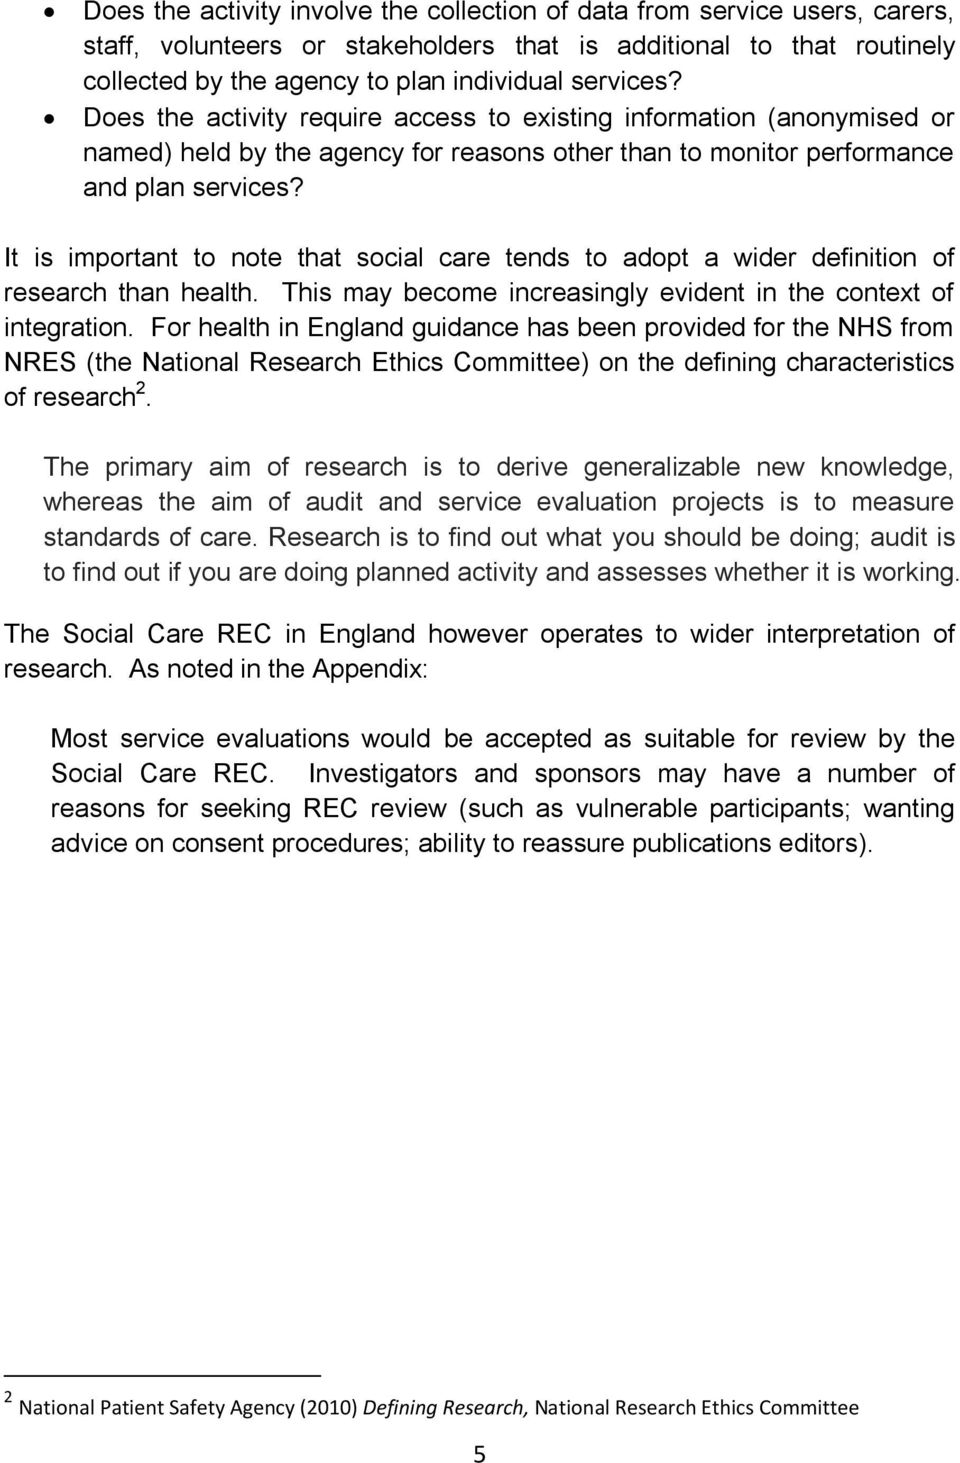 why is research important in health and social care